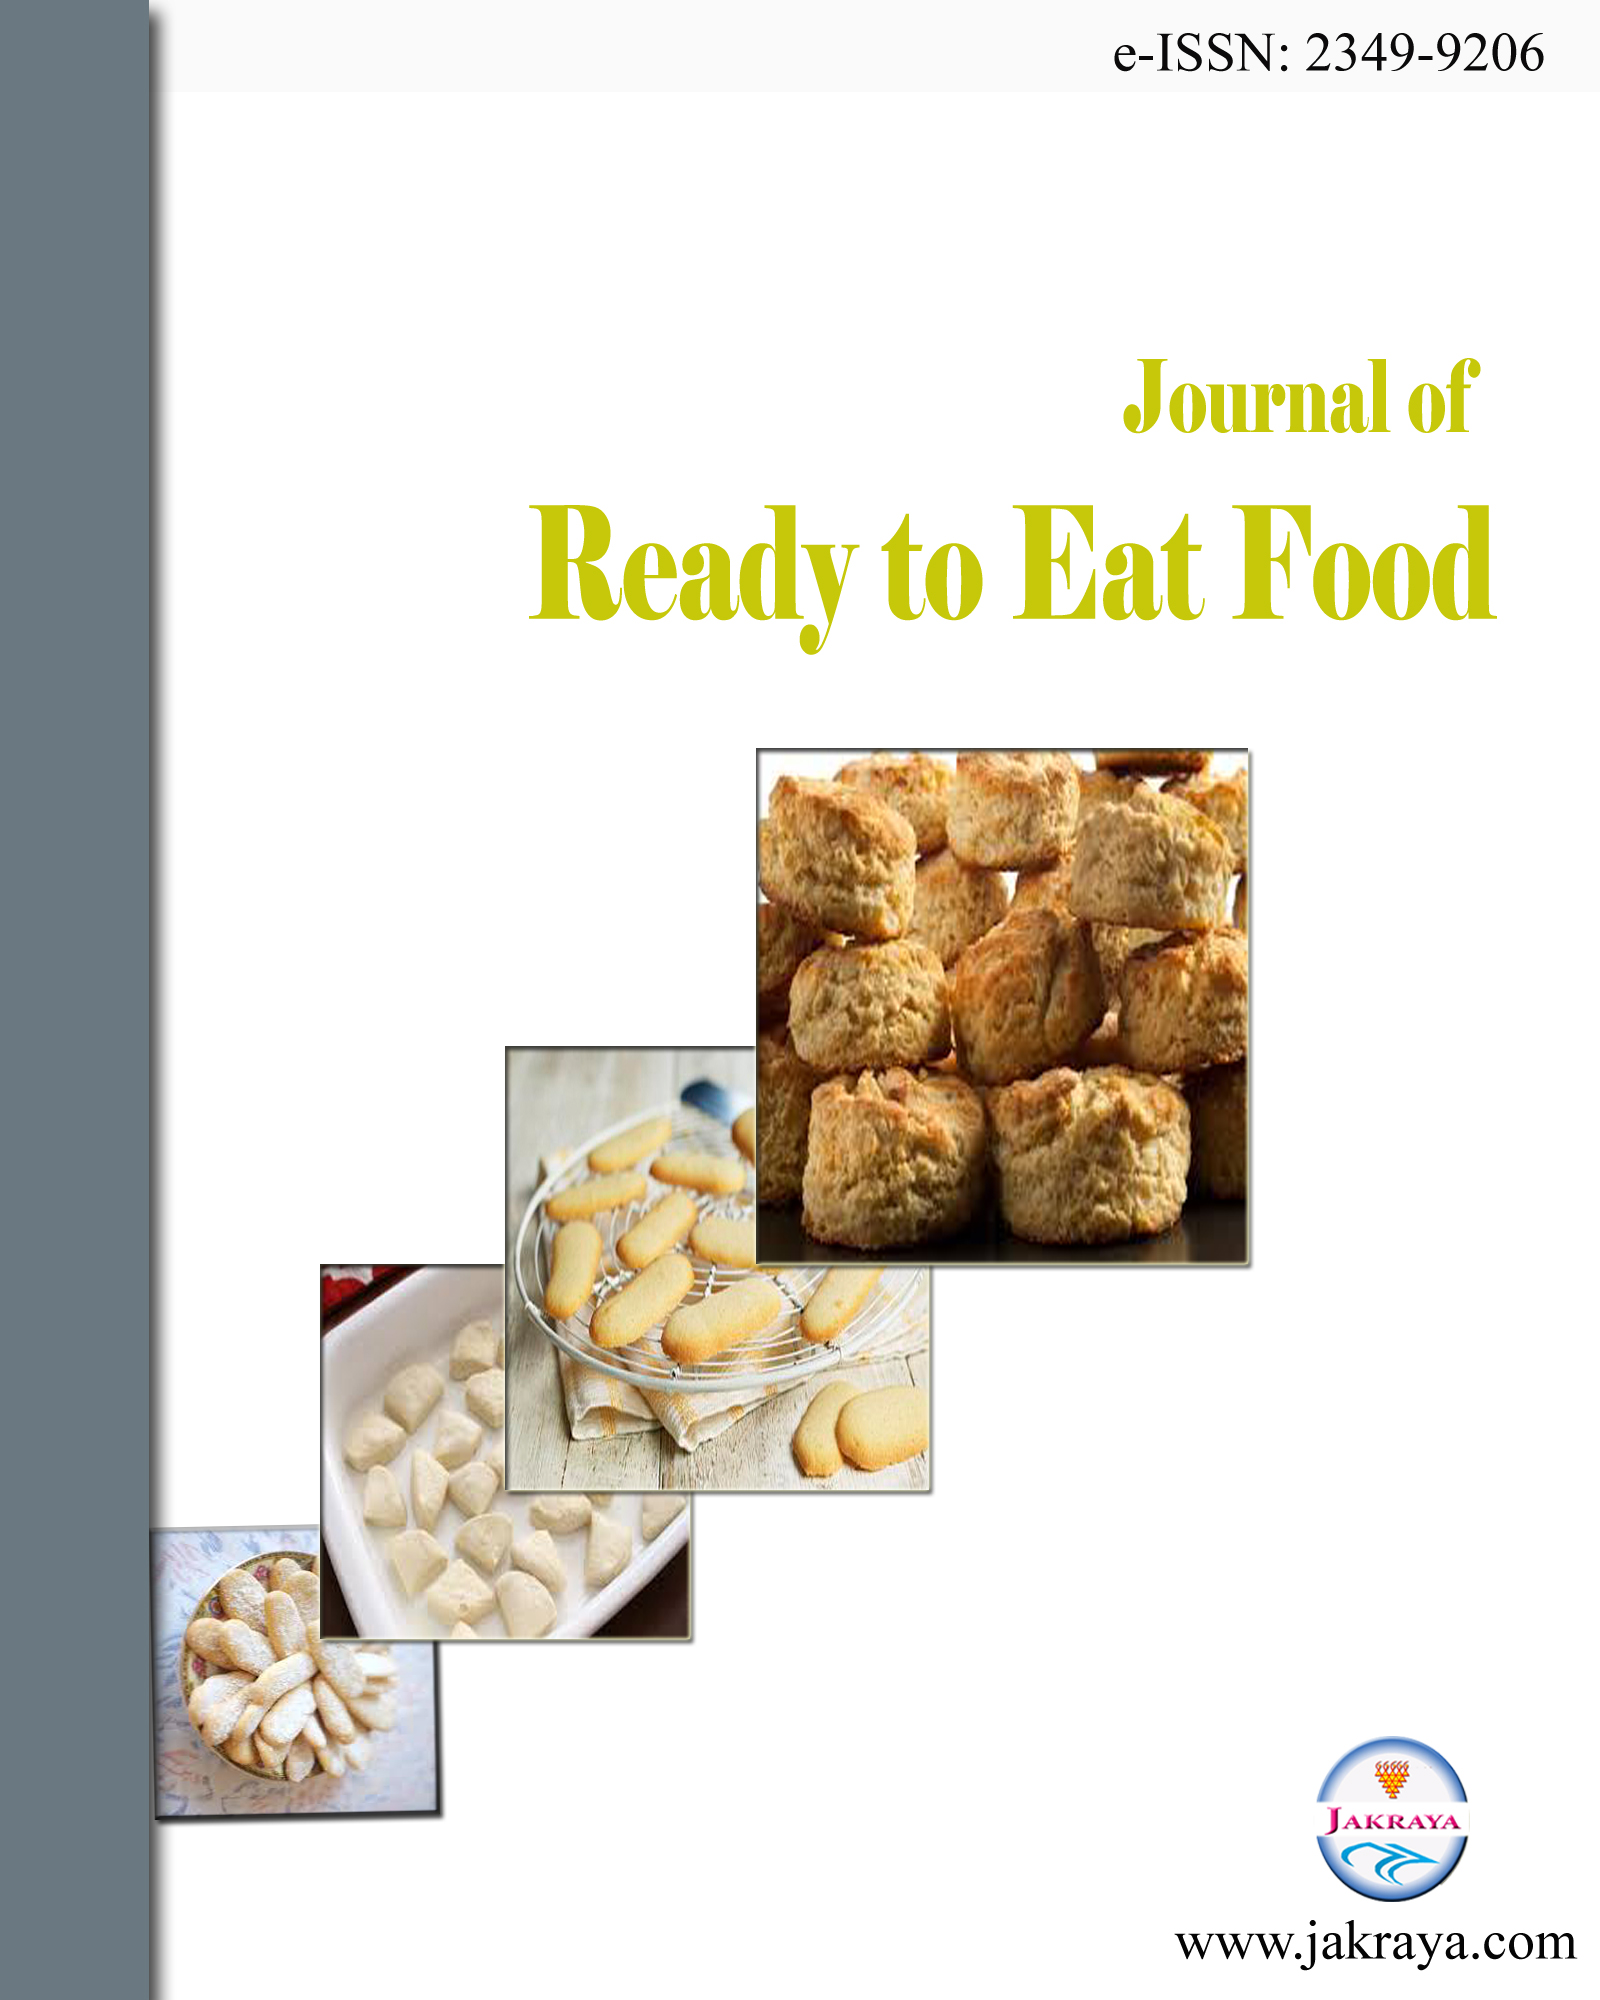 Journal of Ready to Eat Food